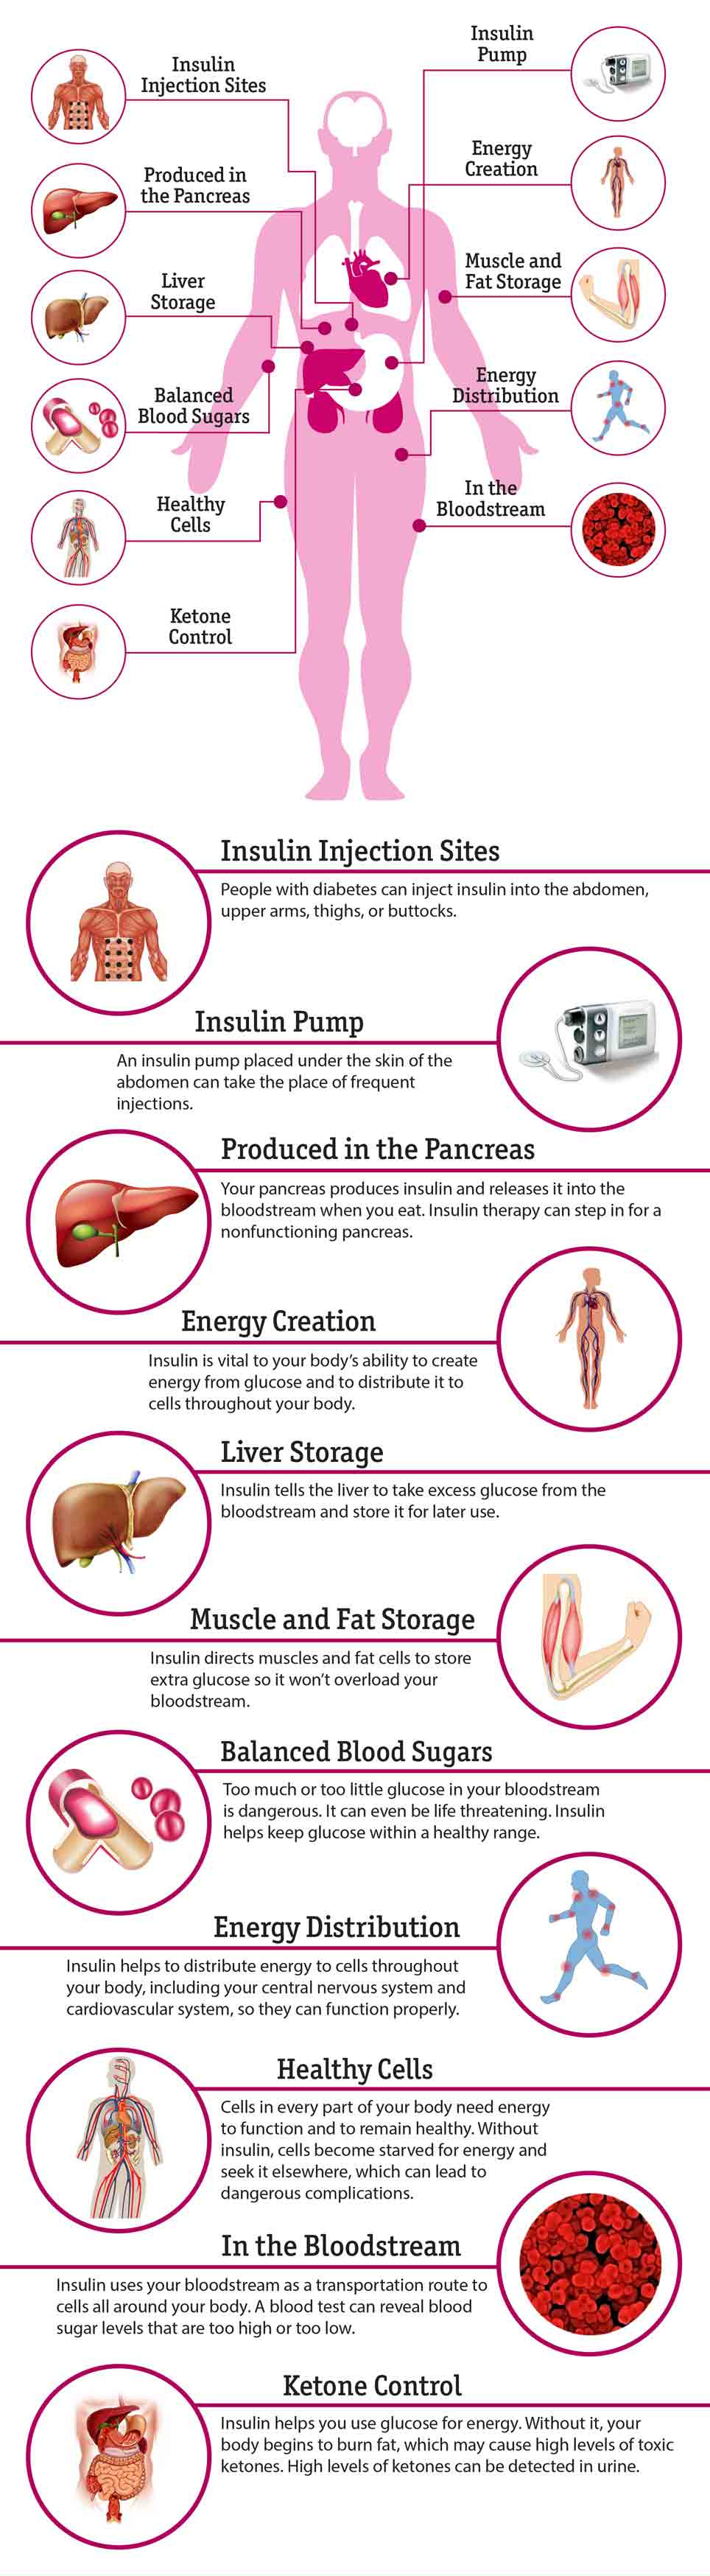 11 Effects Of Insulin On The Body